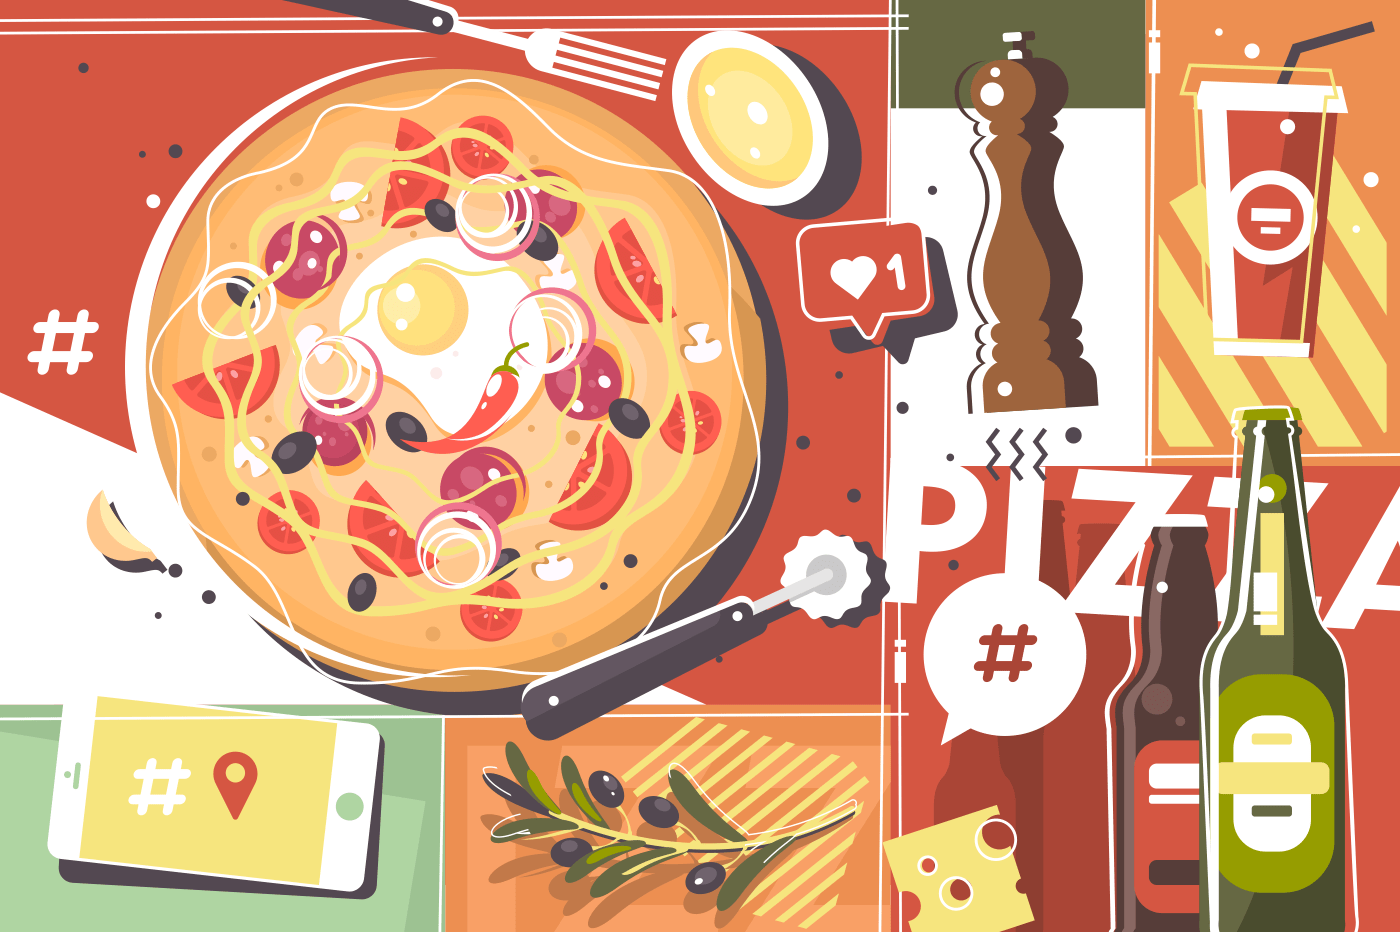 Pizza abstract background. Italian cuisine, olives, drinks and spices. Vector illustration